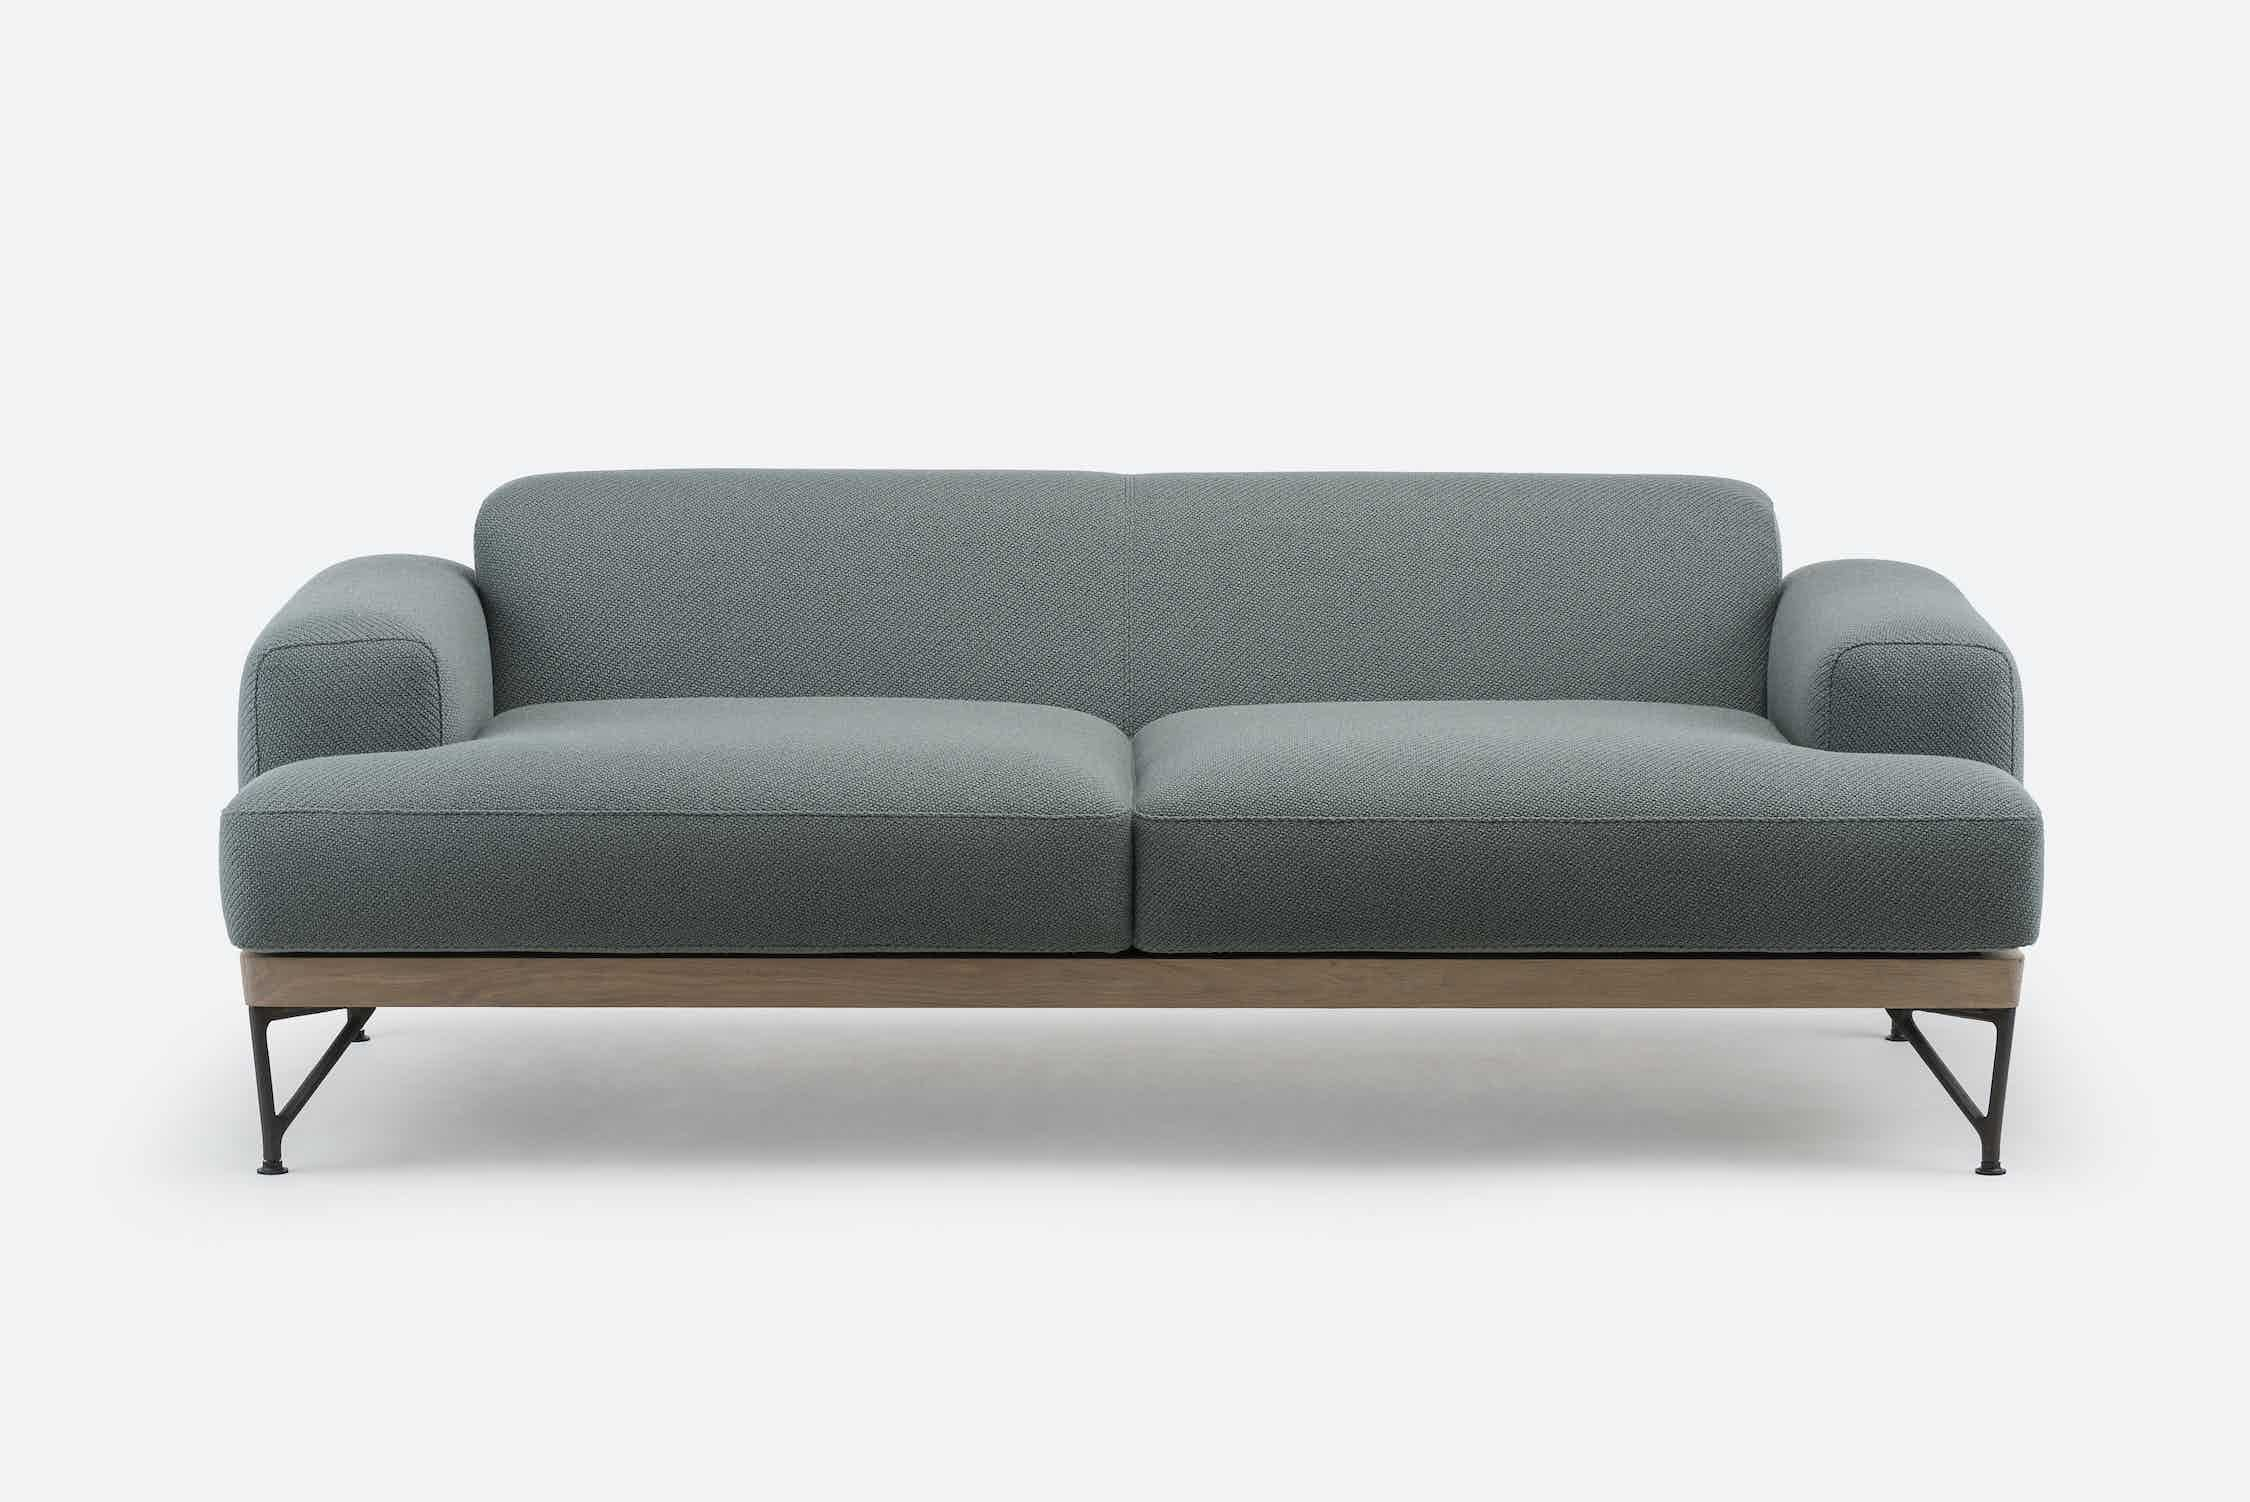 386 M Armstrong Sofa By Matthew Hilton In White Oiled Oak And Coda 2 962 Front